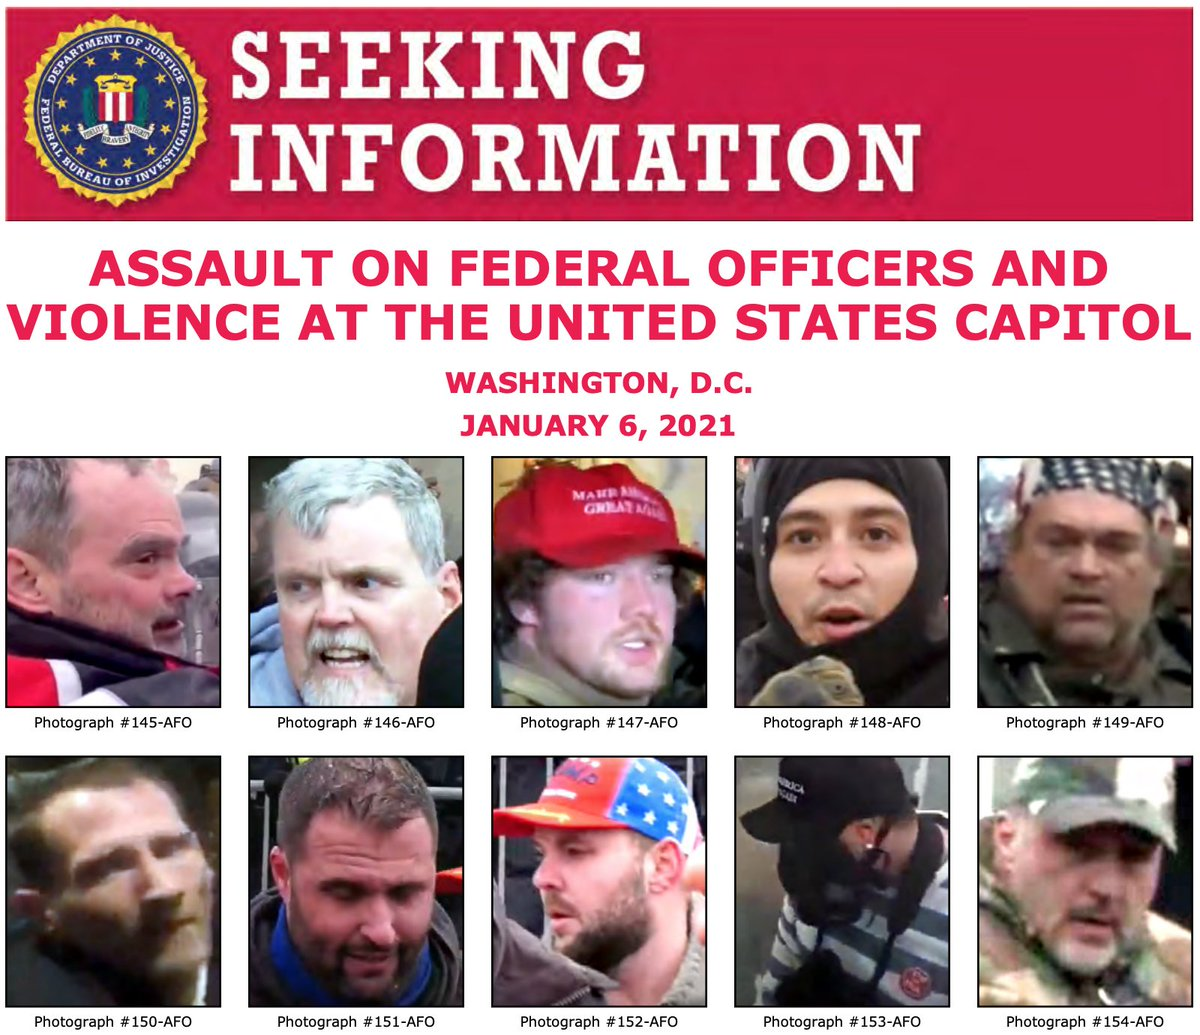 Help the #FBI identify individuals who unlawfully entered the U.S. Capitol on January 6 and assaulted federal law enforcement personnel. If you see someone you know, call 1-800-CALL-FBI (225-5324) or visit  to submit a tip. @FBIWFO